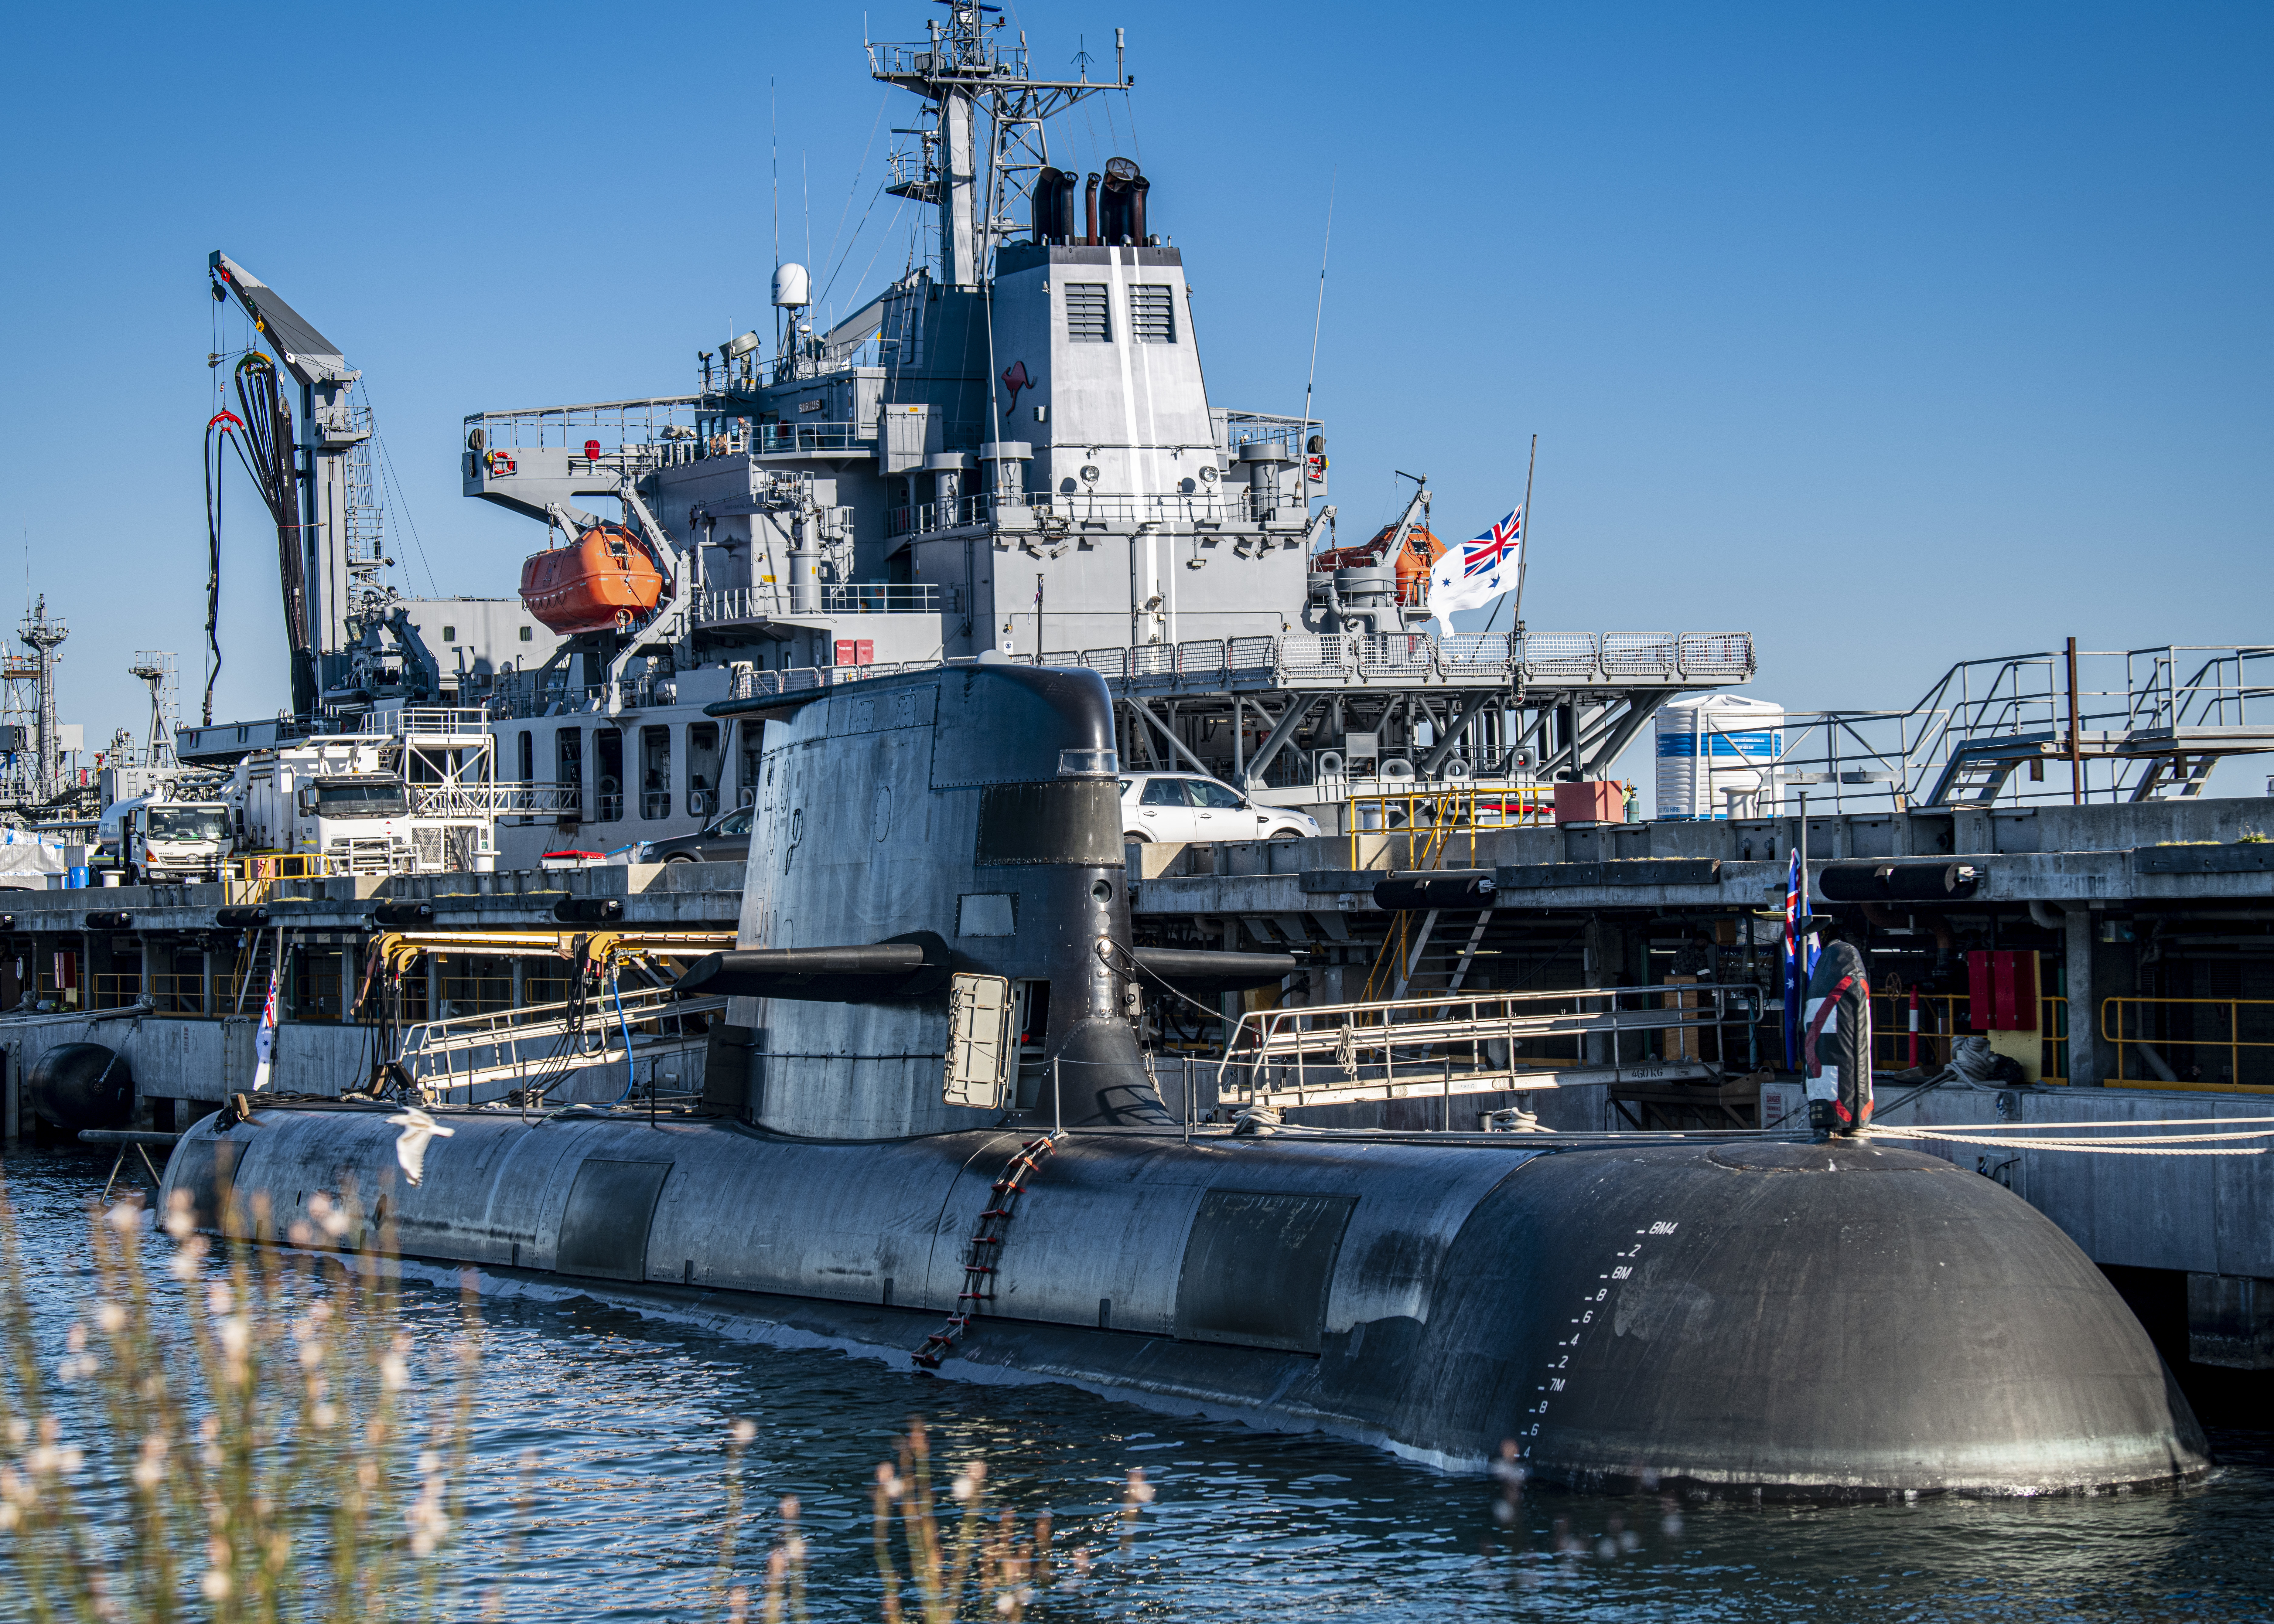 A Collins-class guided missile submarine is moored pier-side during daylight